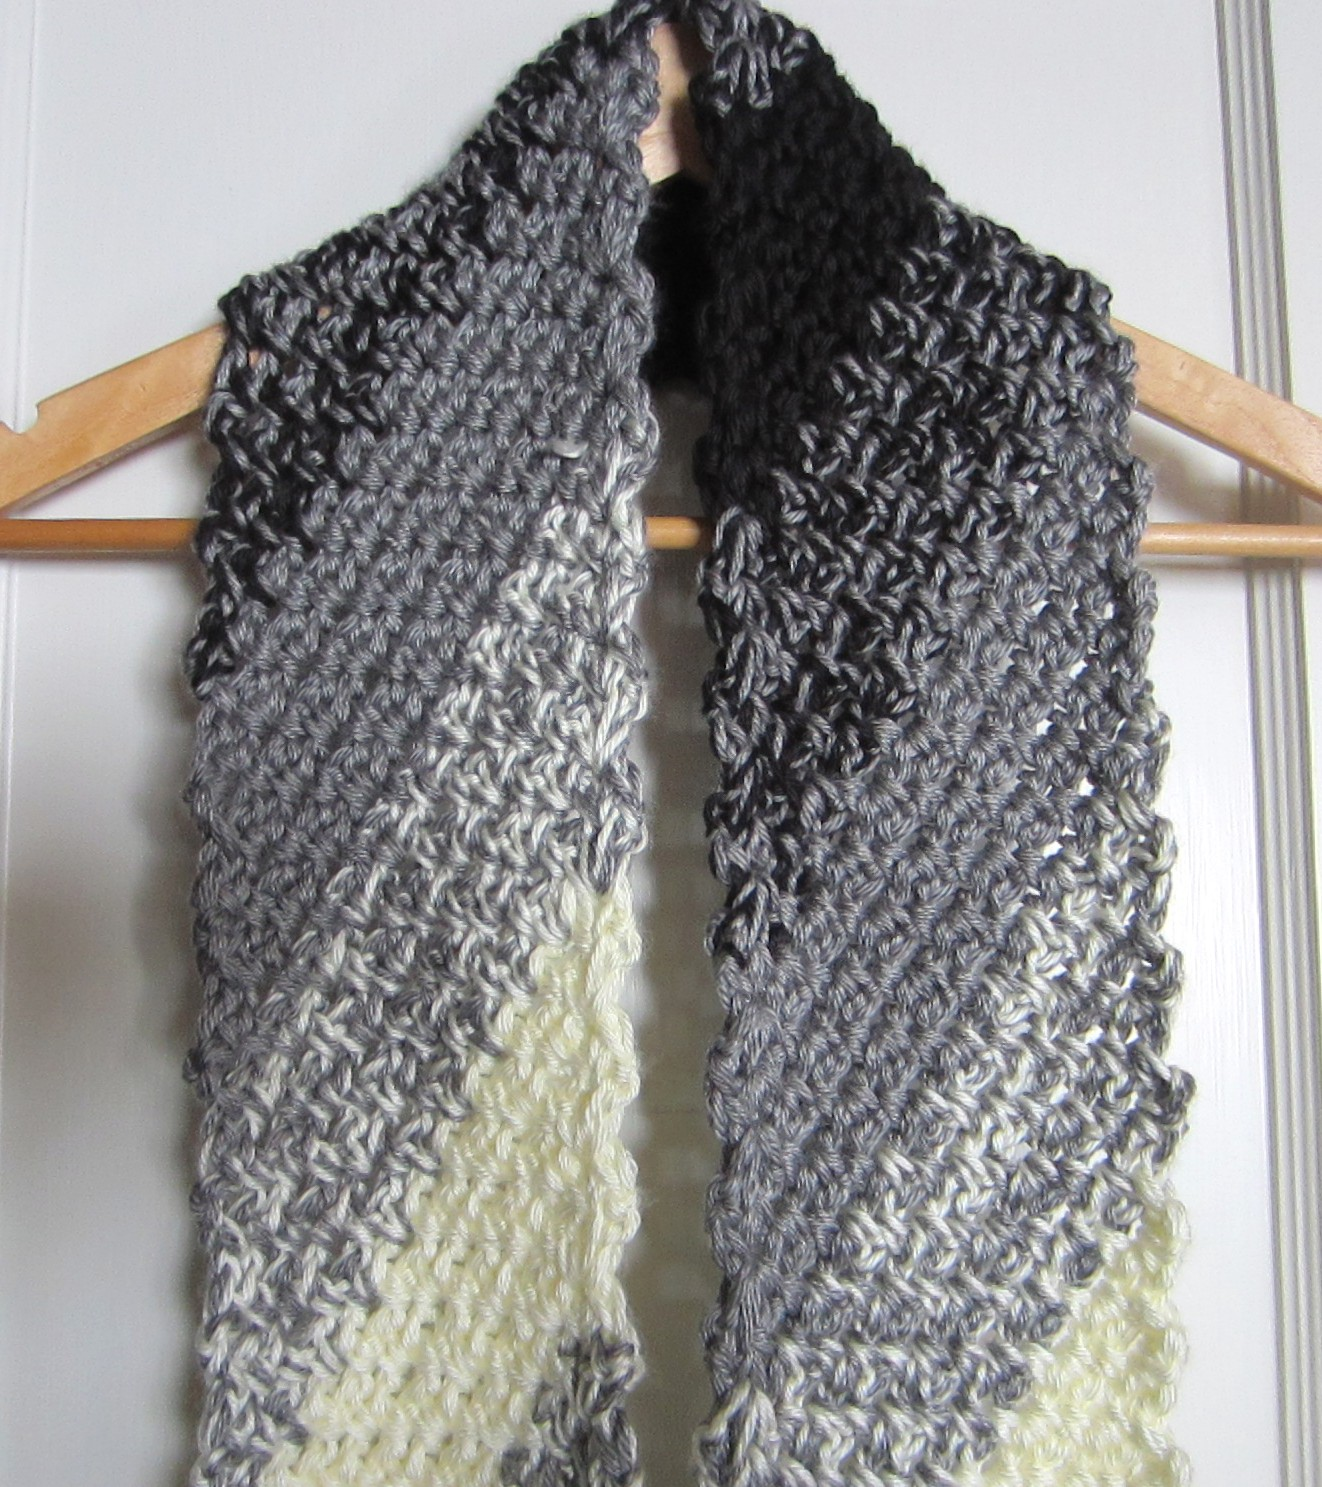 Crocheting Scarf : crochet, scarf, black and white, diagonal 002 G-Ma Ellens Hands ...